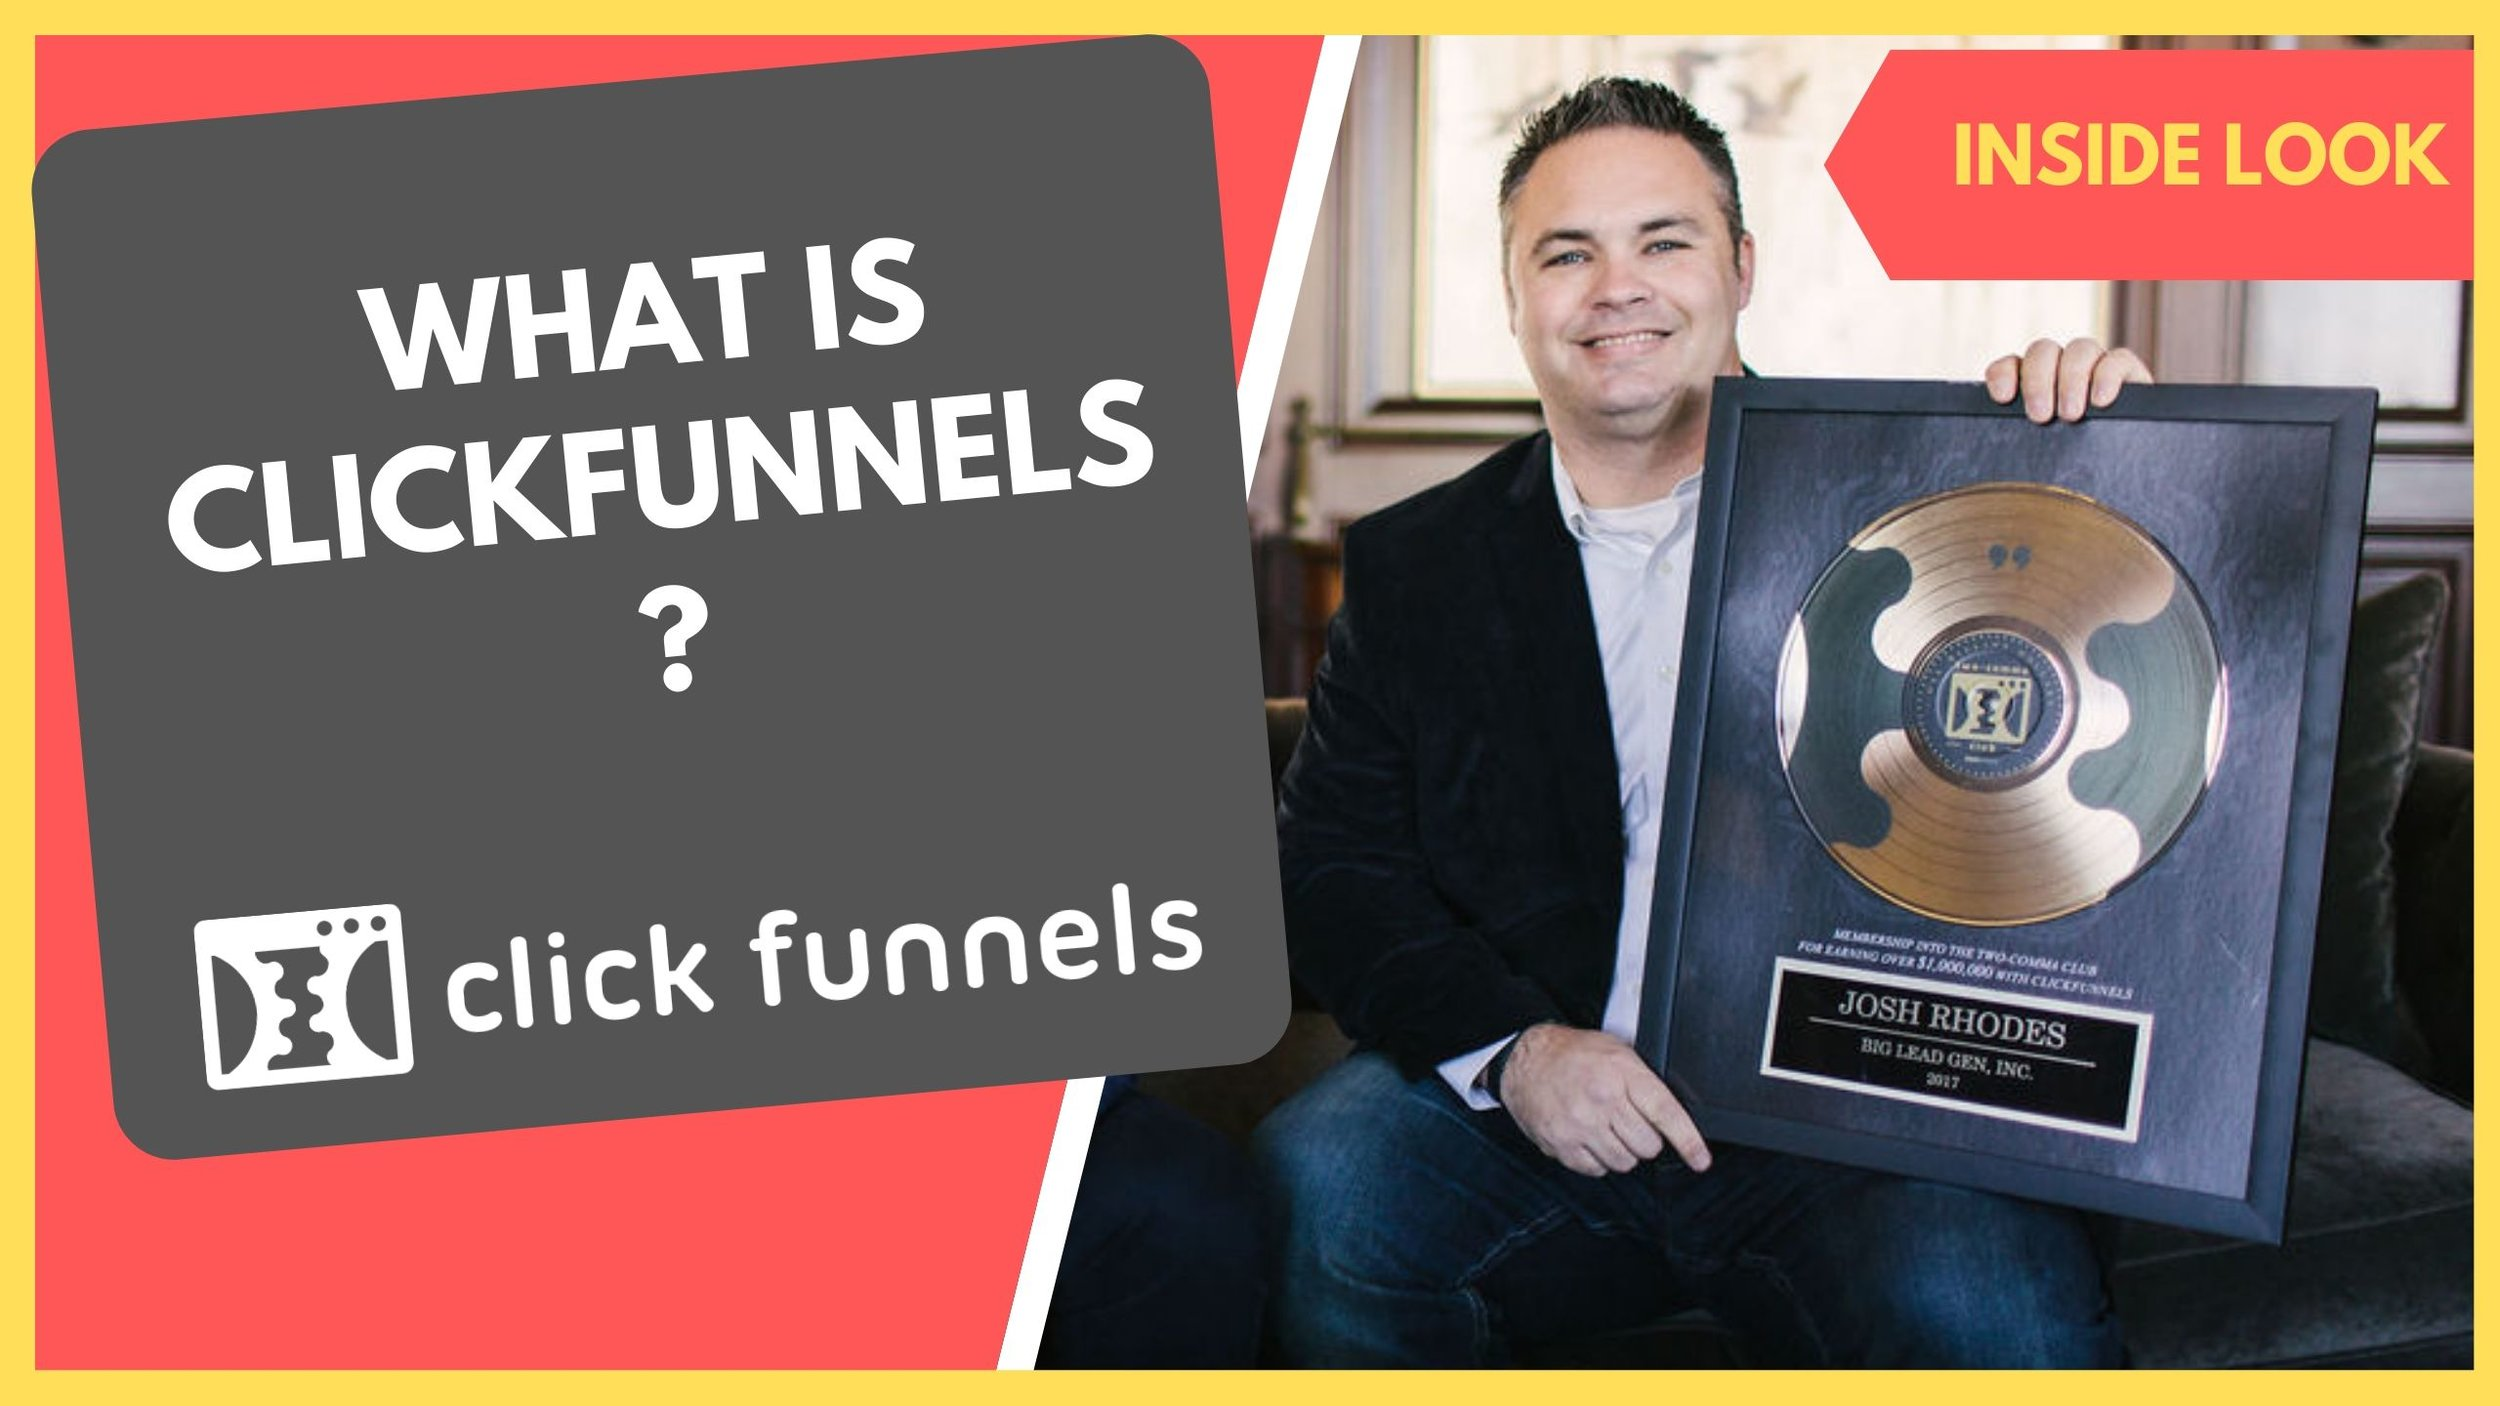 How Is Clickfunnels Useful For People Who Want To Make Money Online